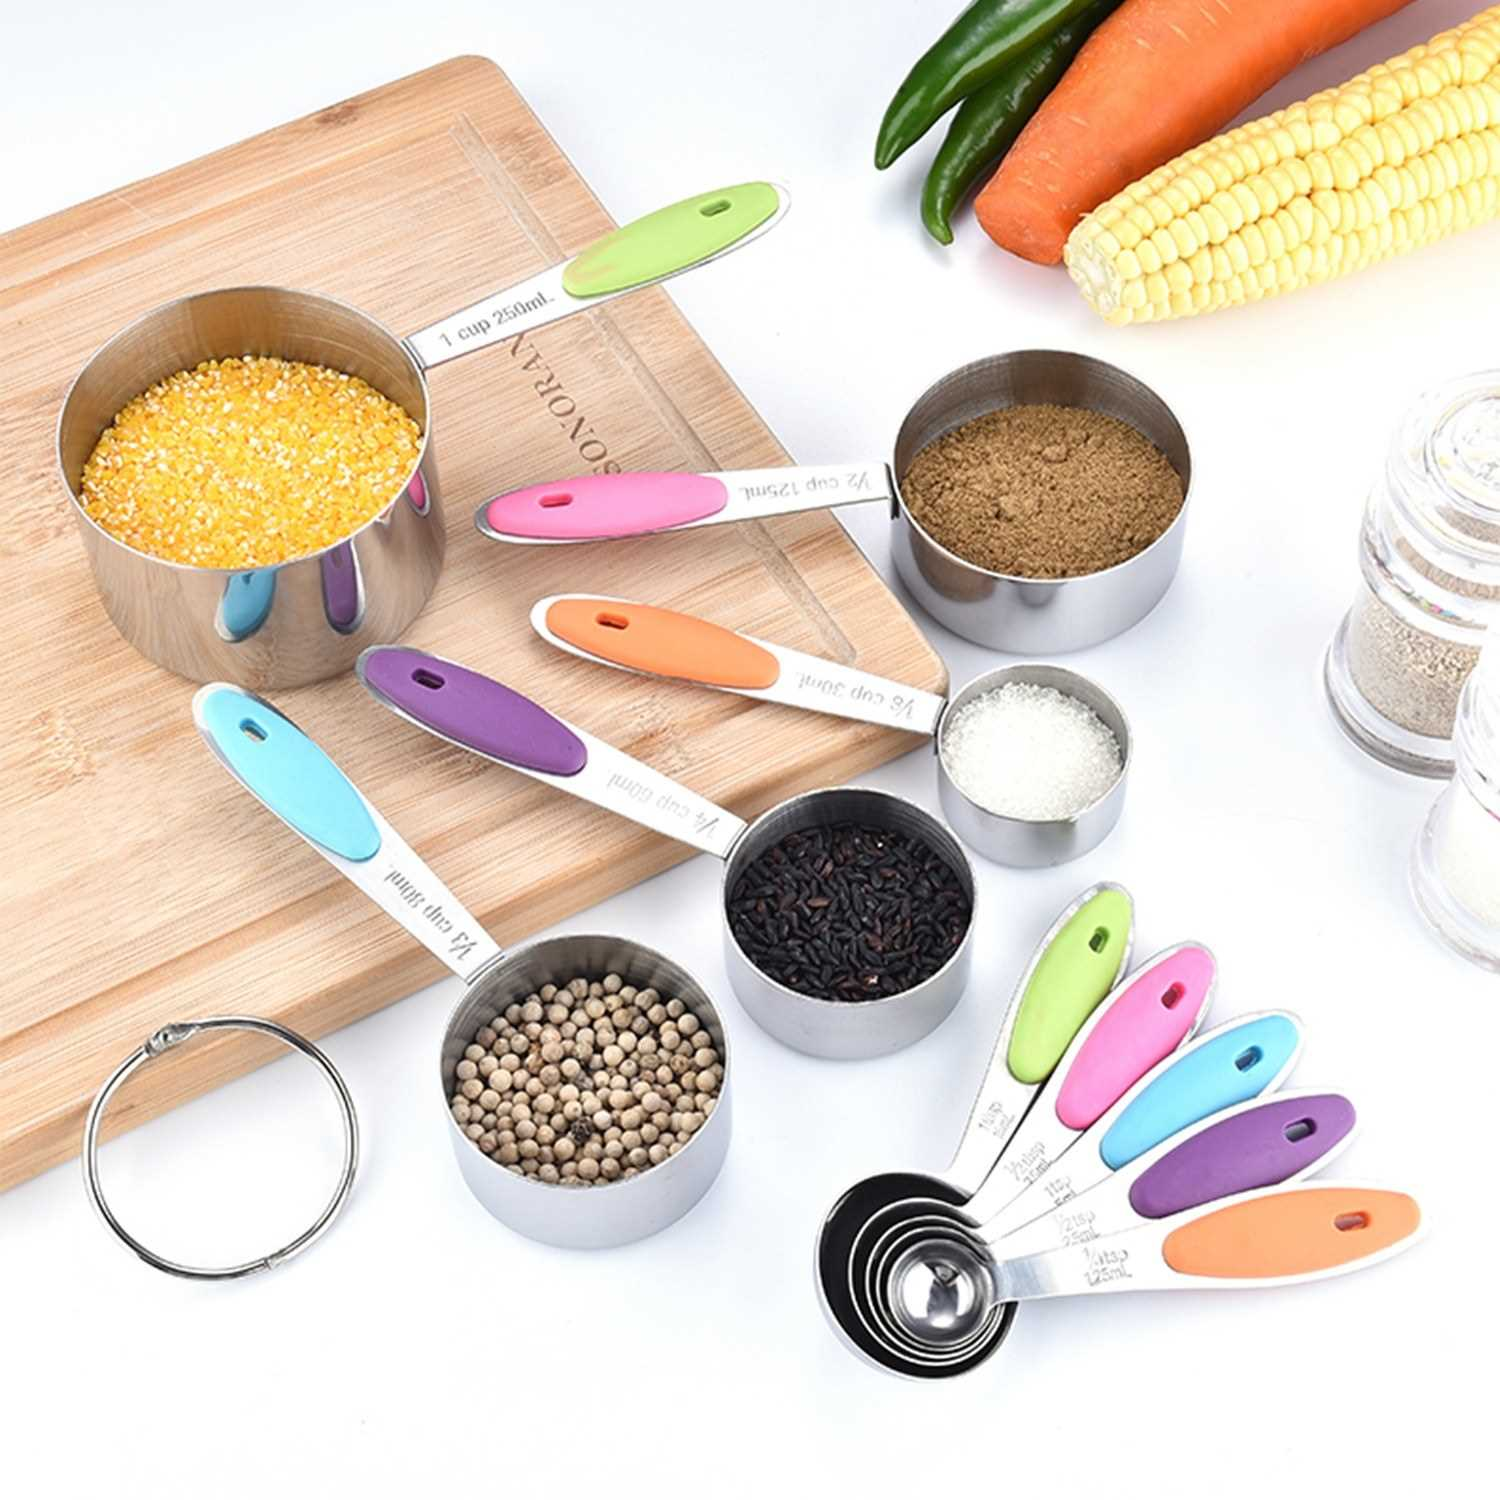 10PCS Measuring Cups and Spoons Set for Dry and Liquid Ingredients